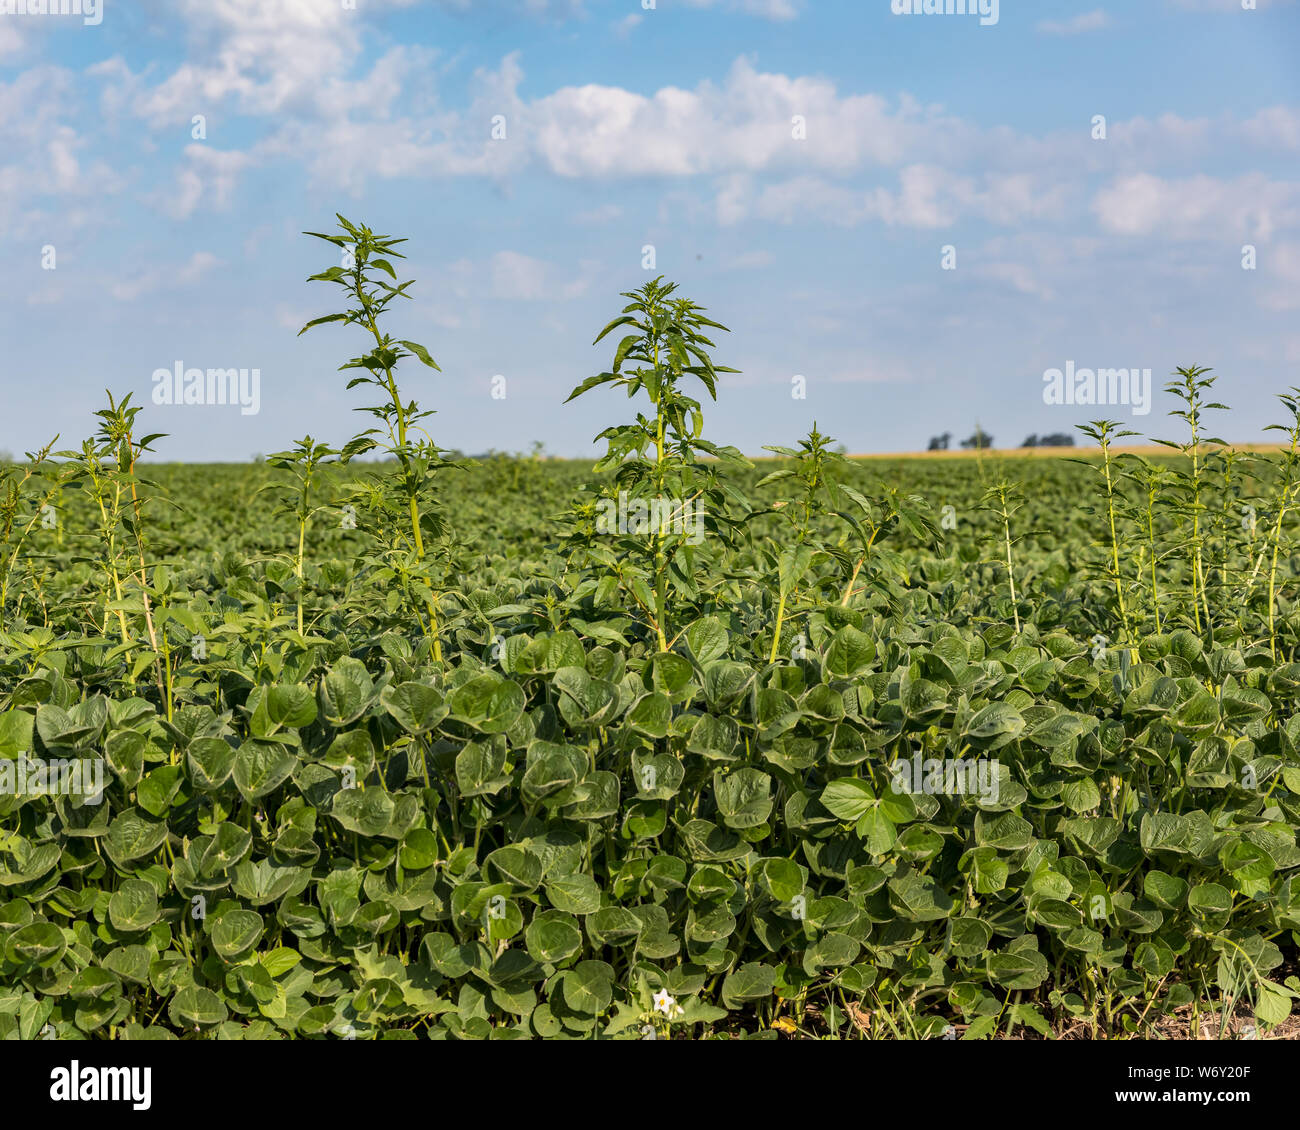 Weedy Field High Resolution Stock Photography and Images - Alamy